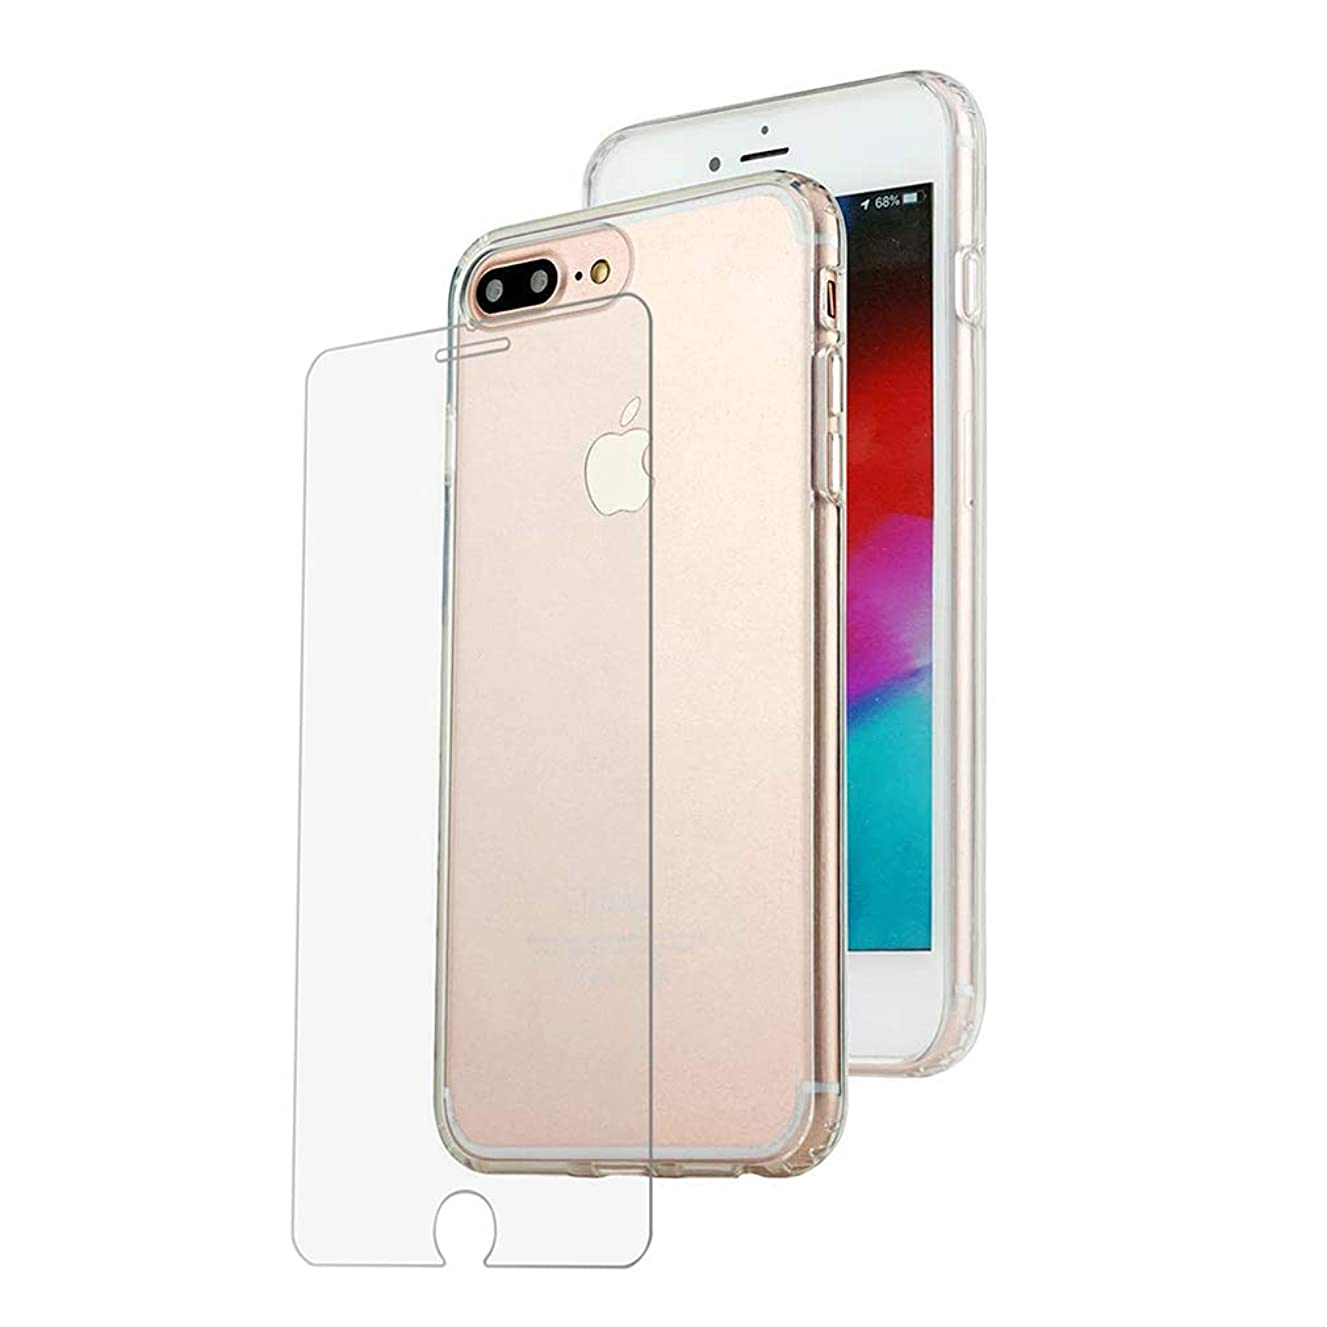 Tuff by Momo Apple iPhone 8 Plus and iPhone 7 Plus Ultra Hybrid Slim Clear Case with Screen Protector, 5.5 Inch, Drop Proof tested, Shock-Absorption Bumper Cover Protection, Anti-Scratch PC Clear Back